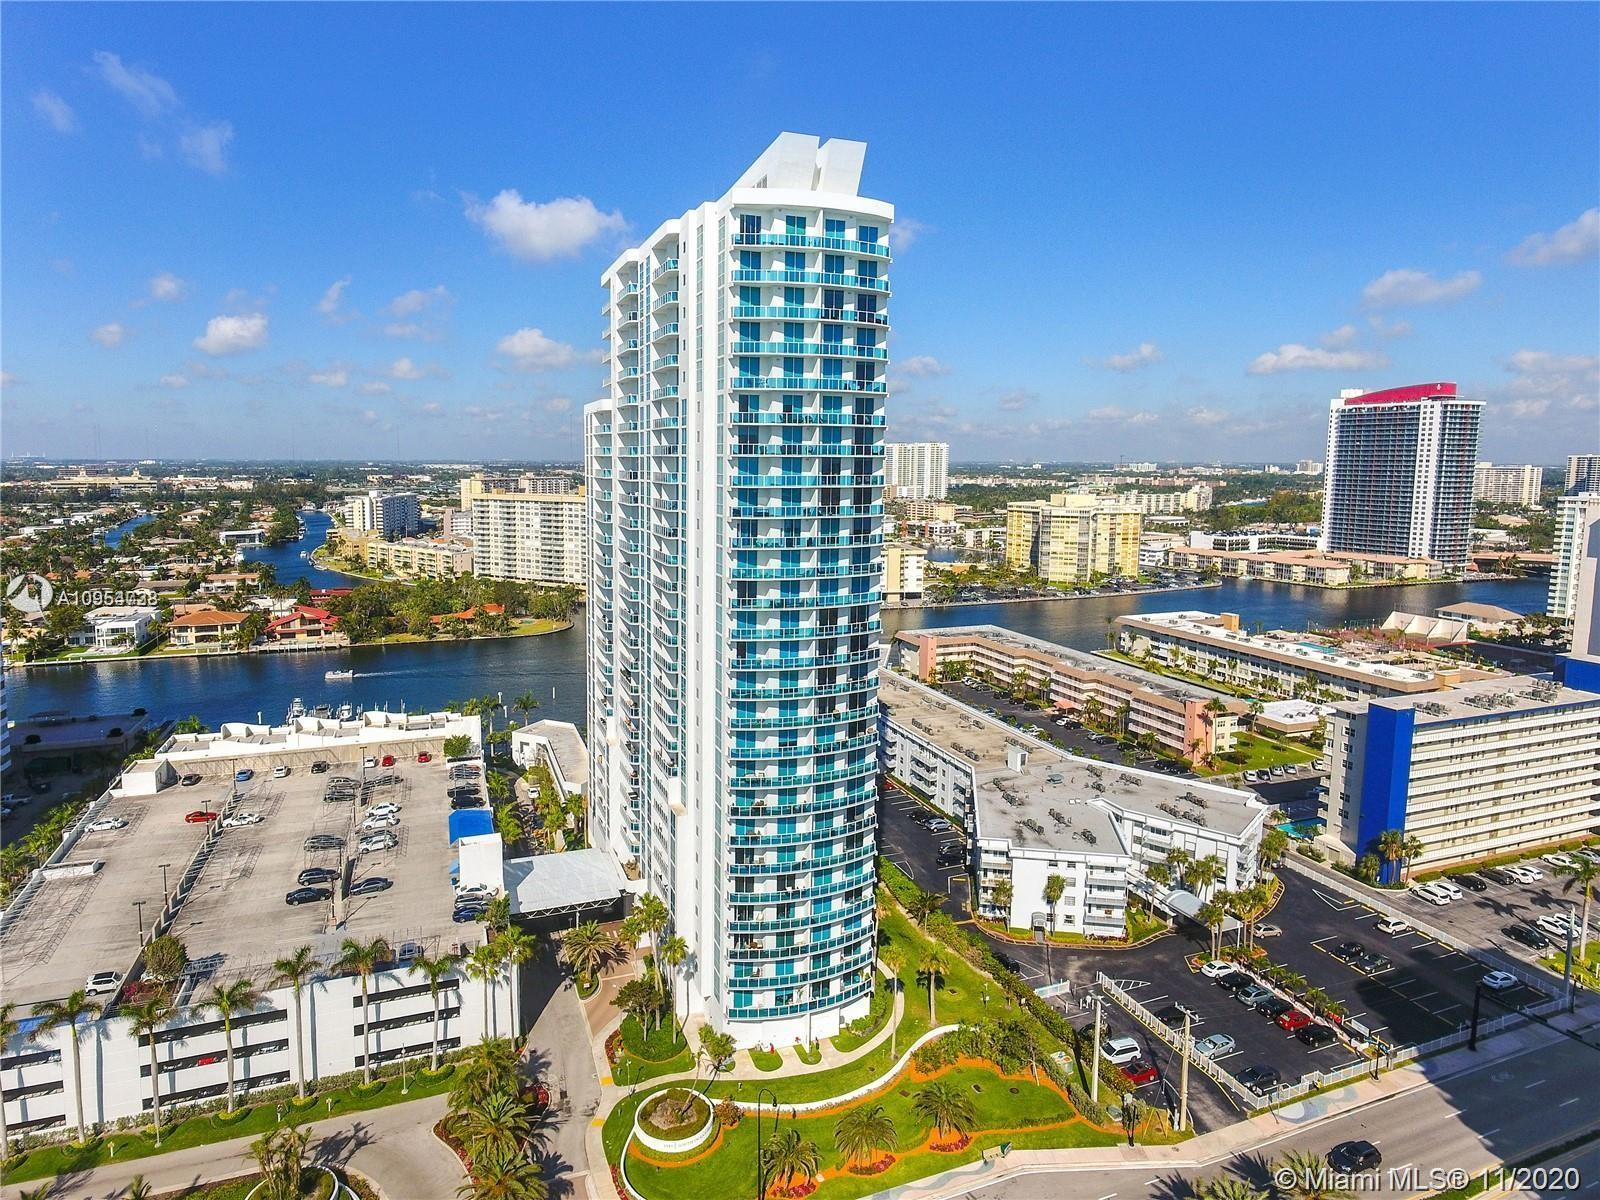 BEAUTIFUL  SPACIOUS  1 BEDROOM 1 1/2 BATH  WITH PANORAMIC INTRACOASTAL AND OCEAN VIEW.  BEST LAYOUT